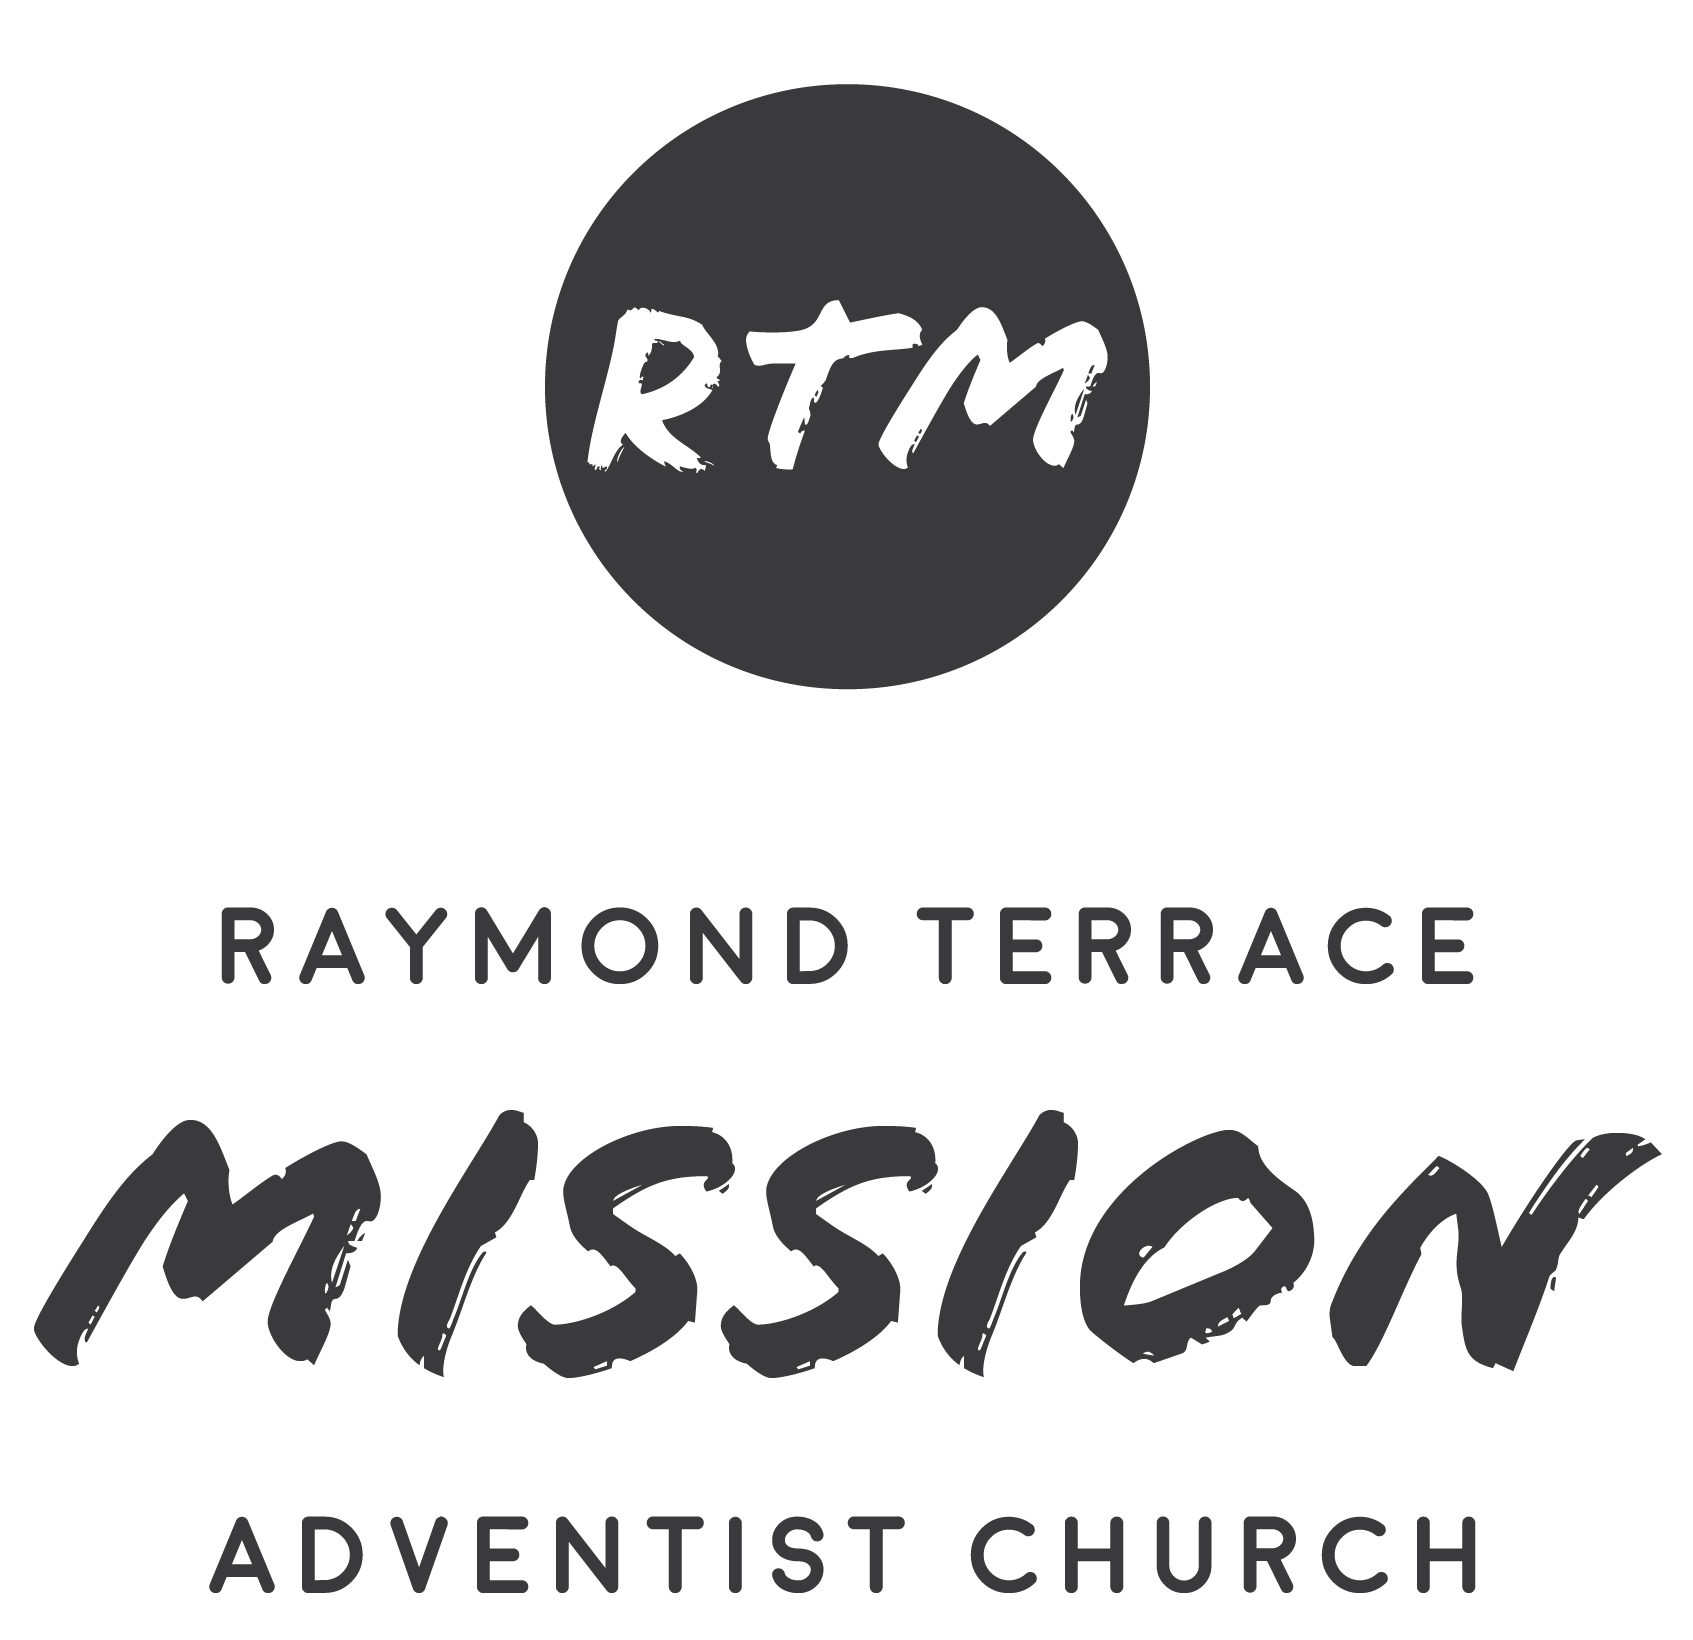 Raymond Terrace Mission Adventist Church